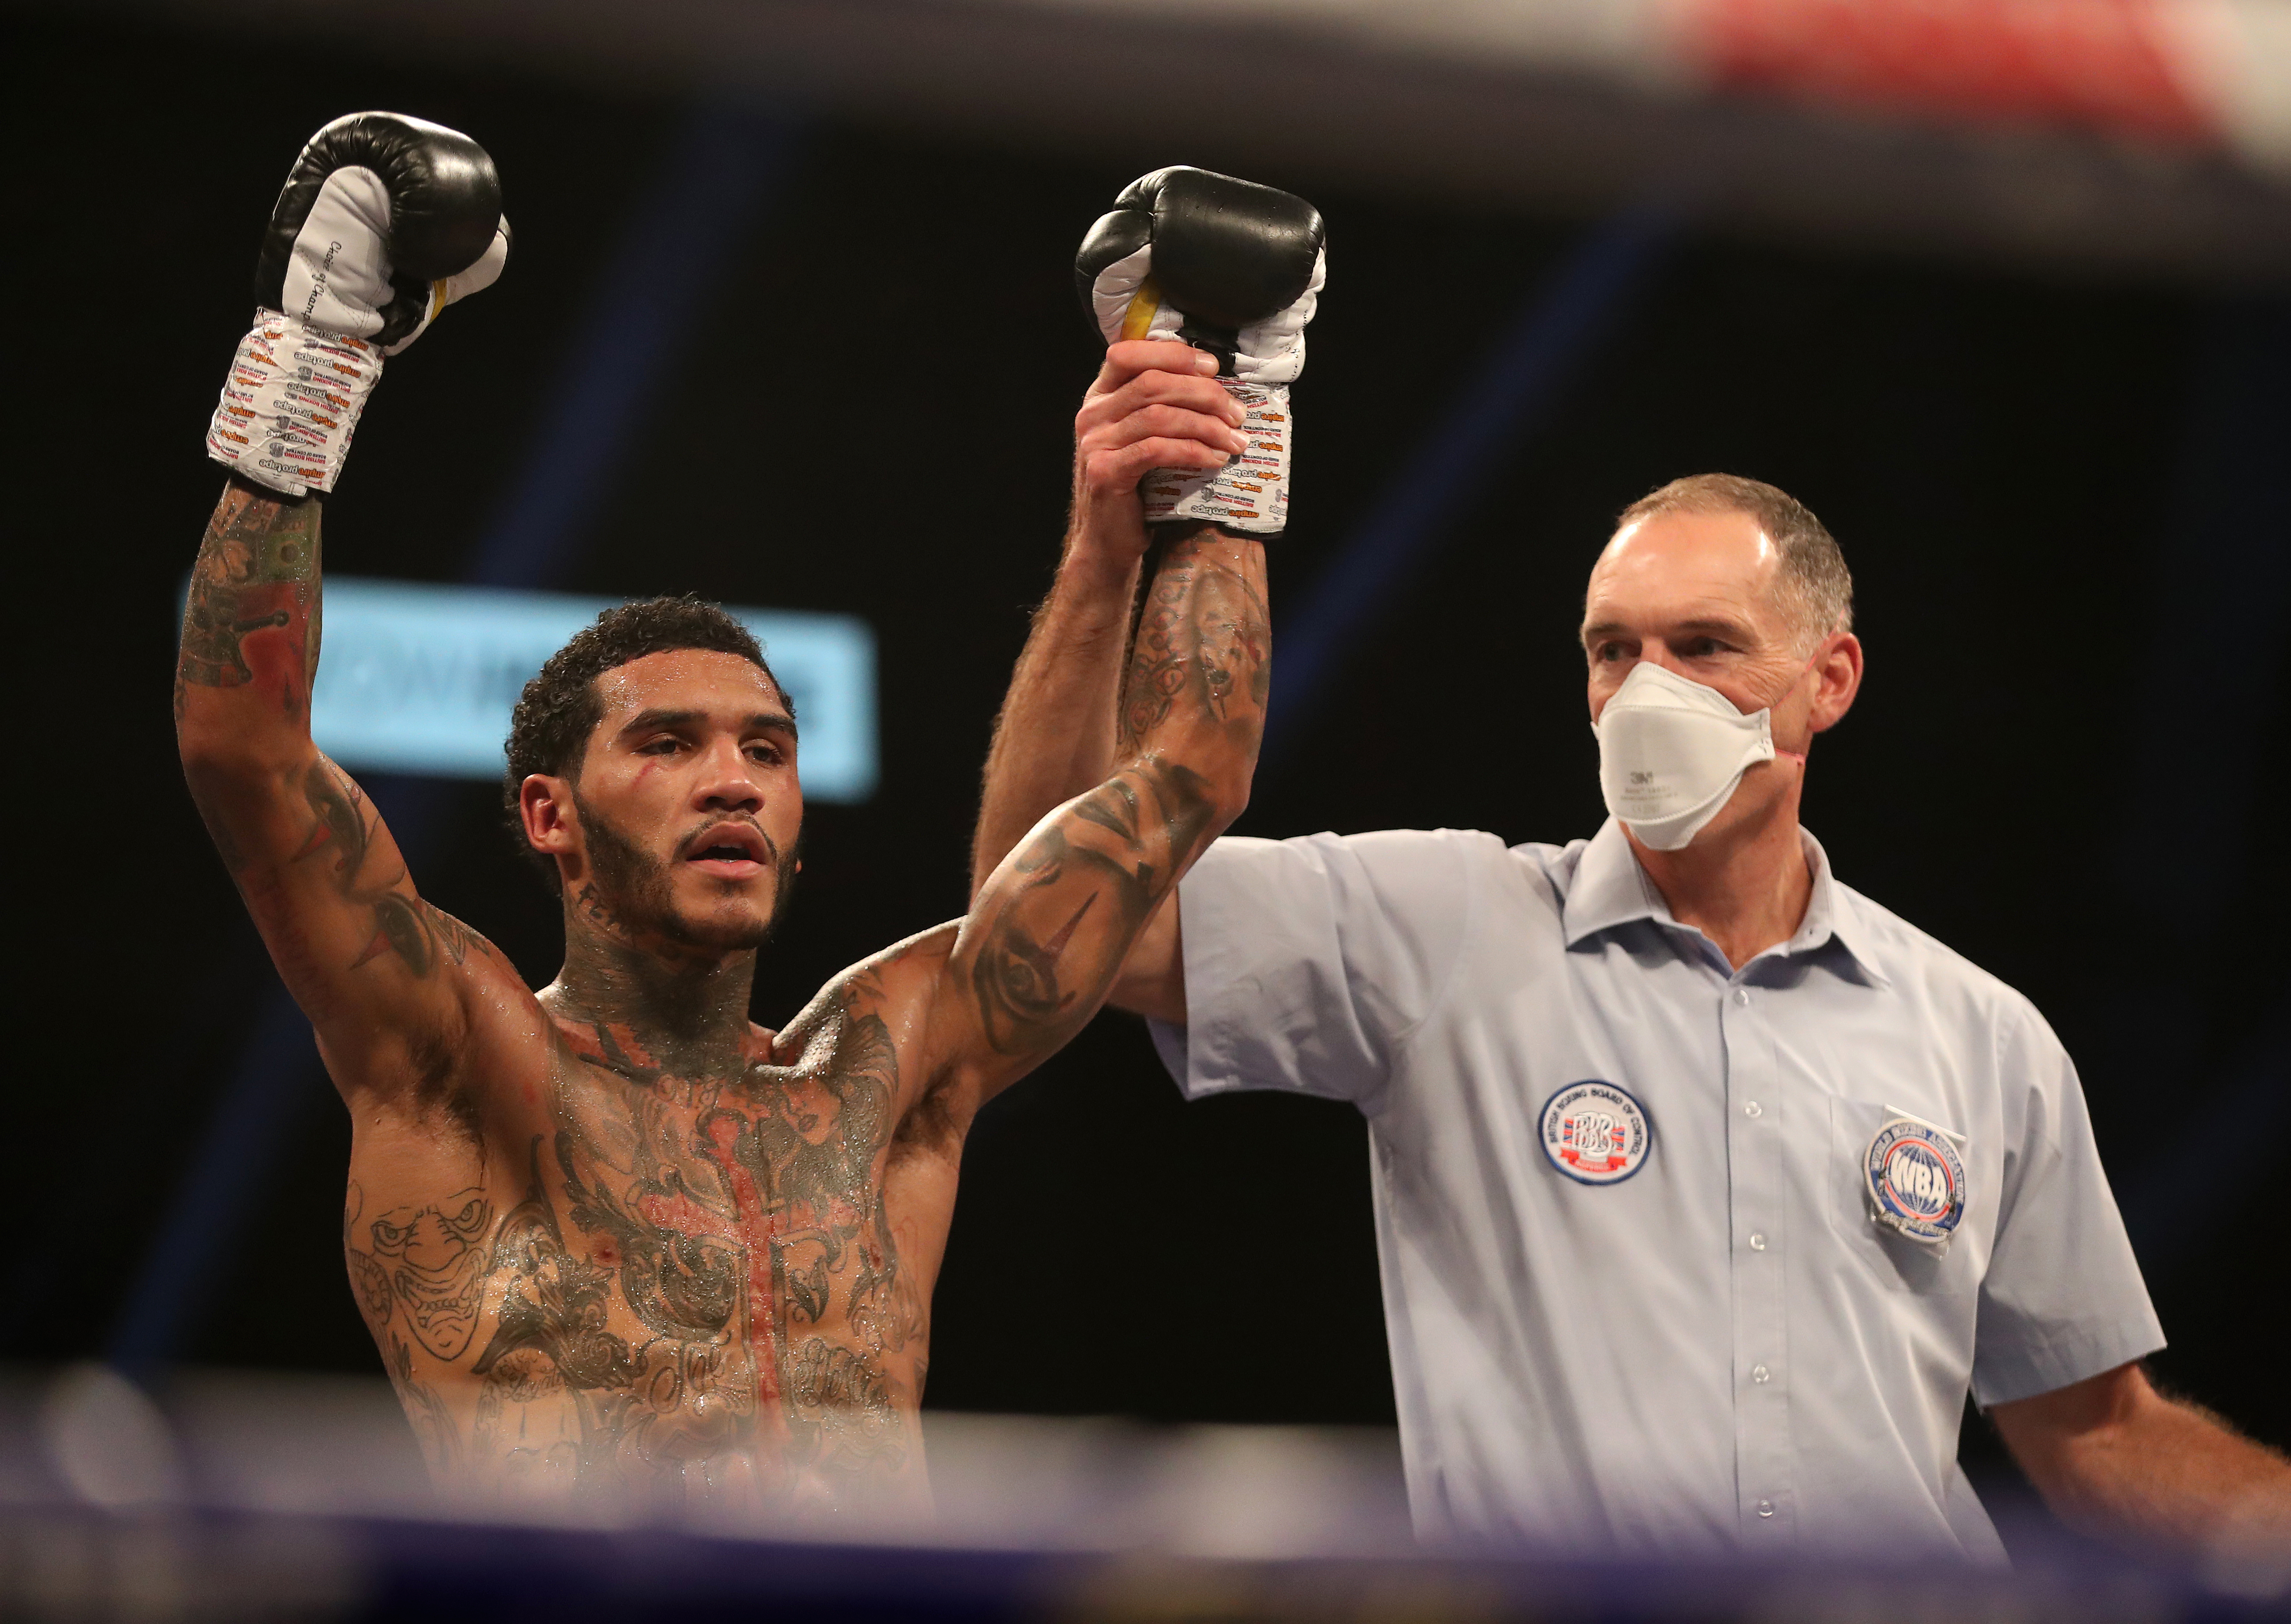 Conor Benn knocks out Samuel Vargas in first round to make big statement to welterweight division, calls out Amir Khan